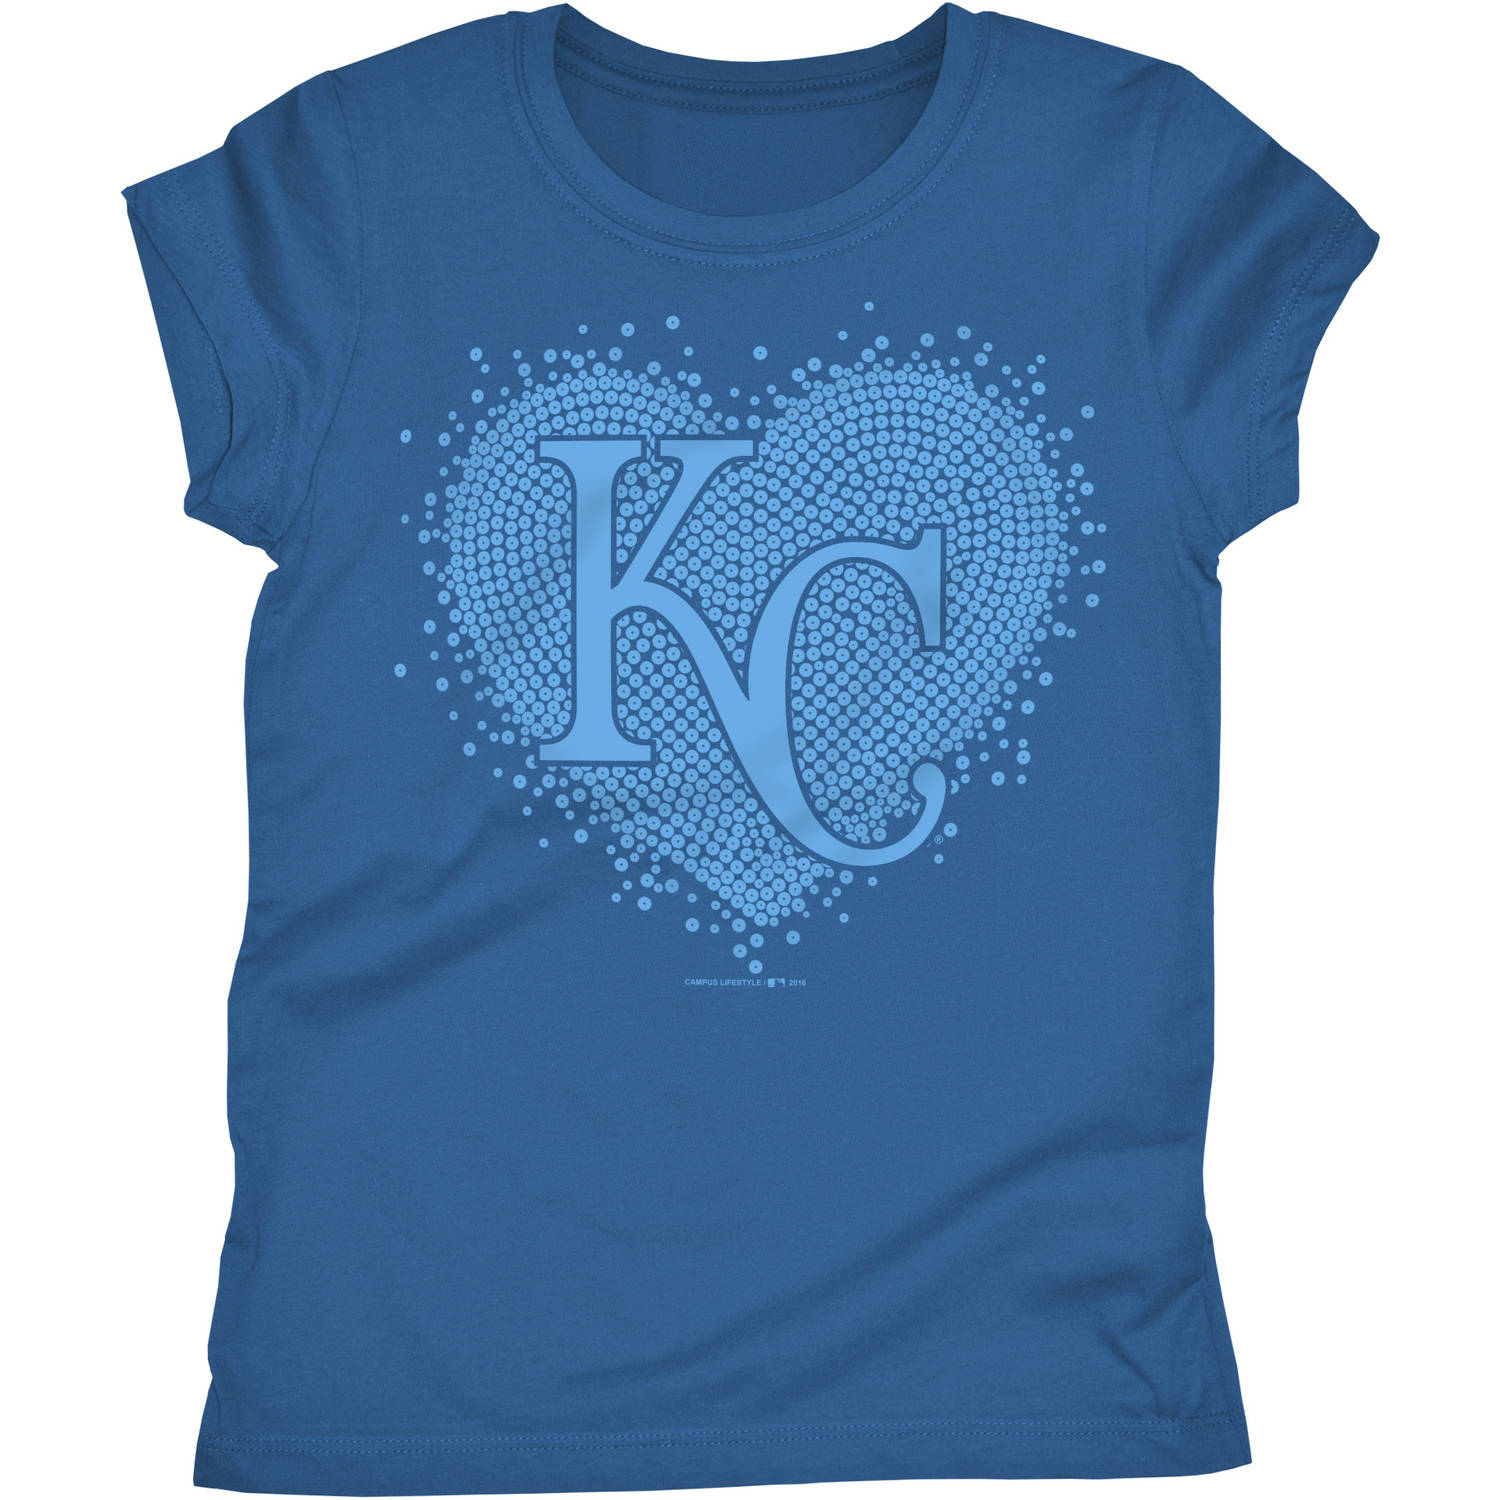 Kansas City Royals Girls Short Sleeve Graphic Tee